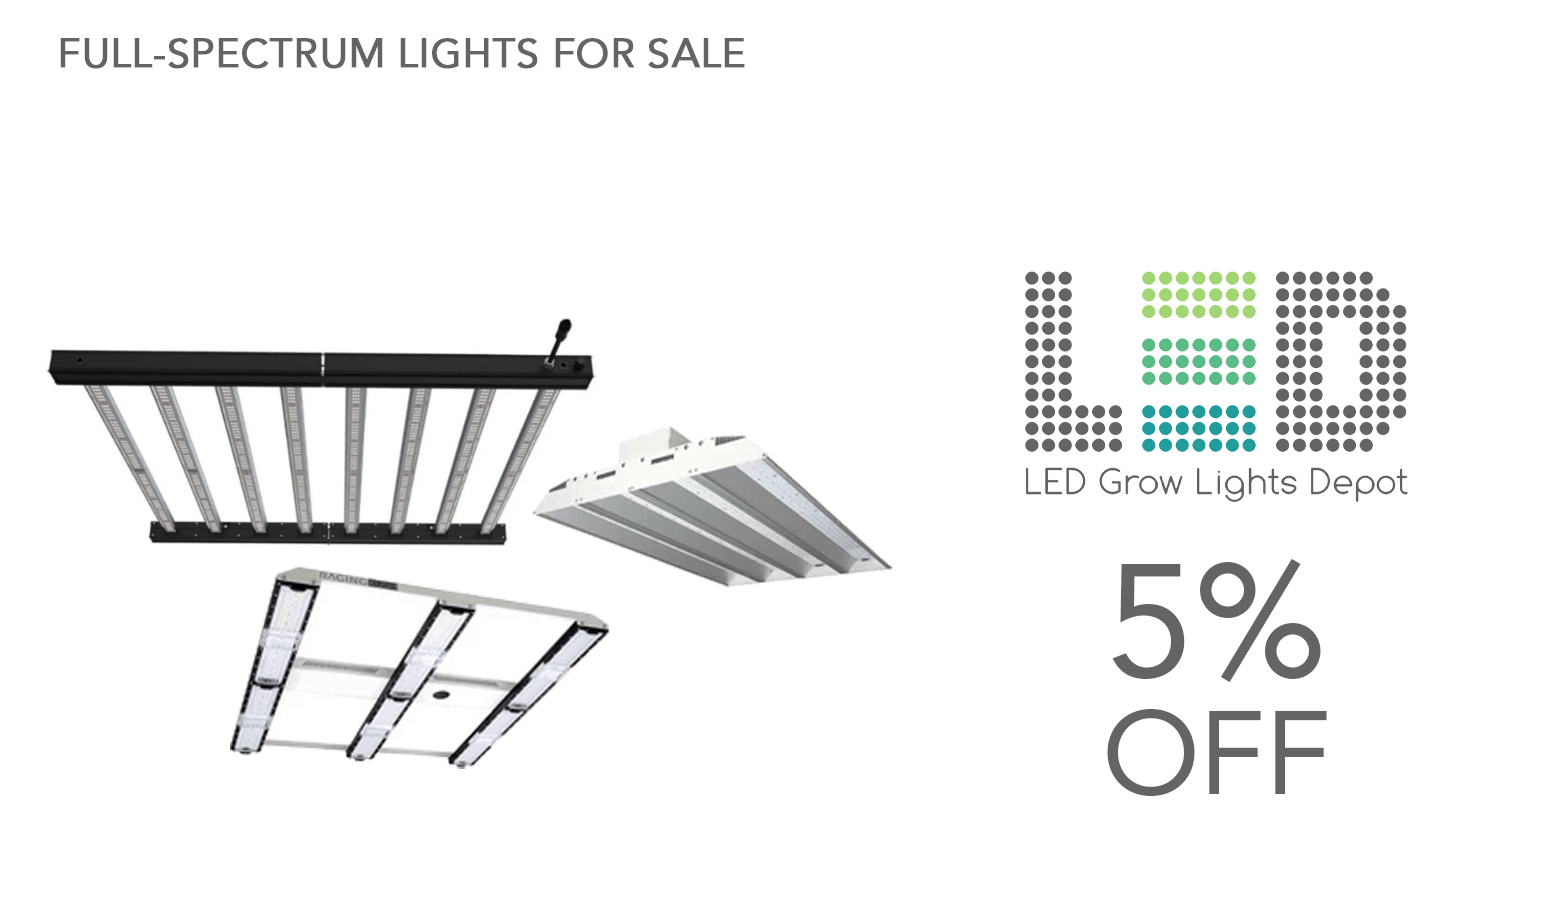 LED Grow Lights Depot Coupon Code Website